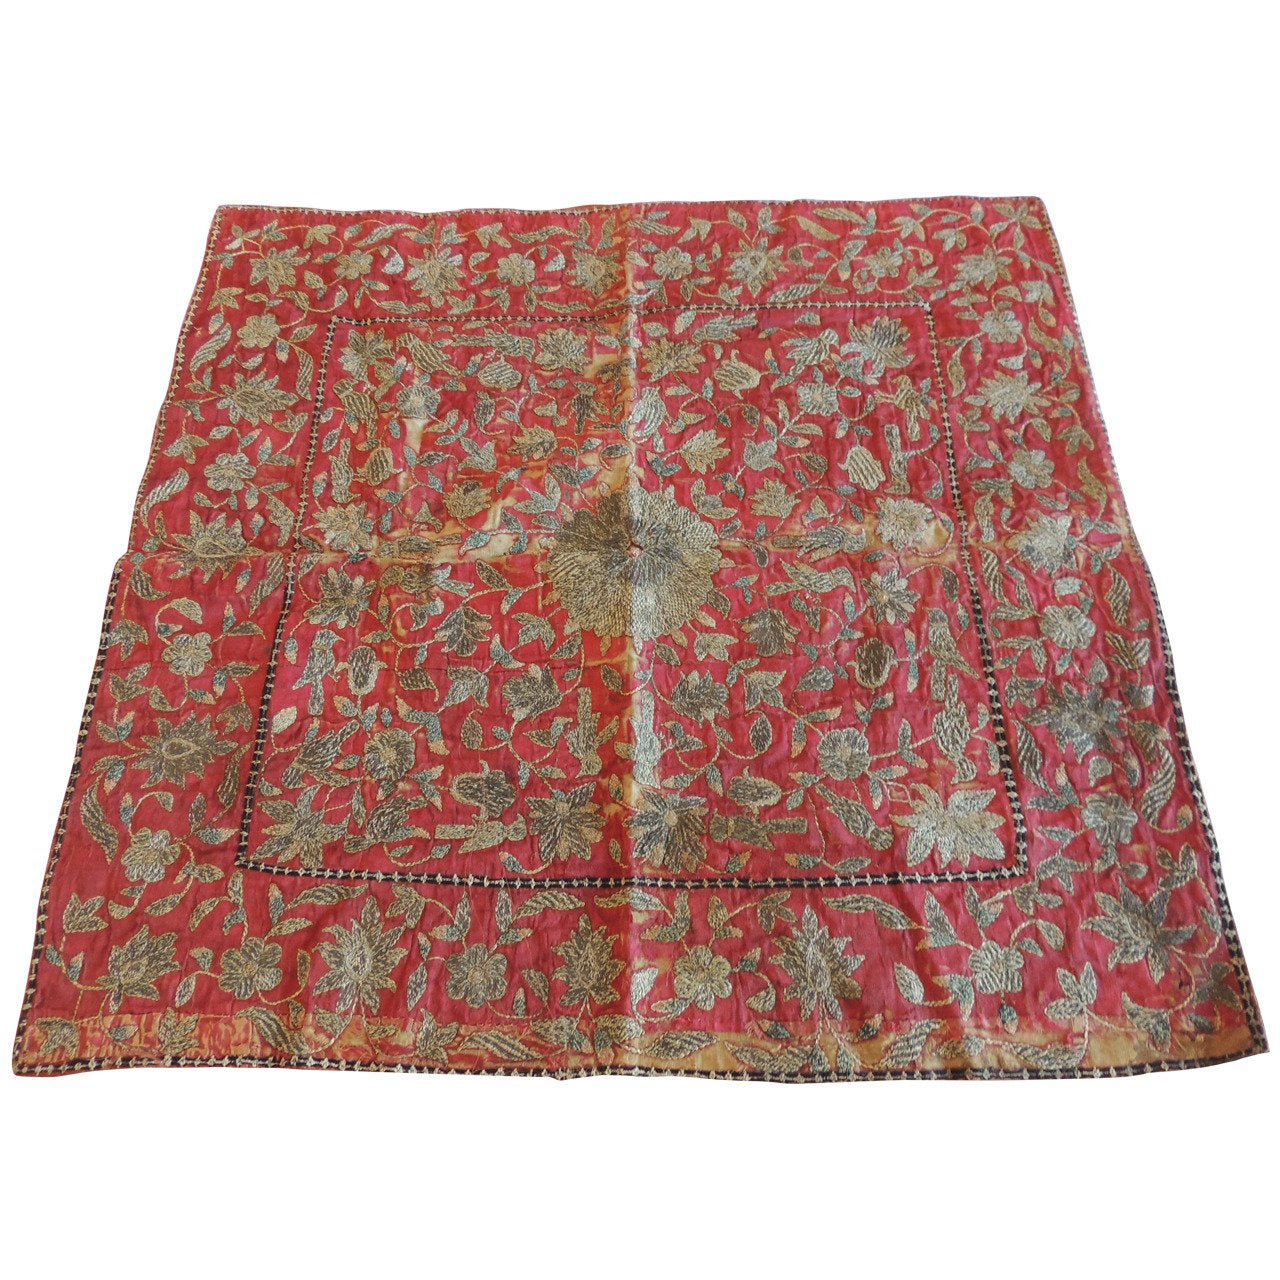 Red and Gold Persian Embroidery Square Panel